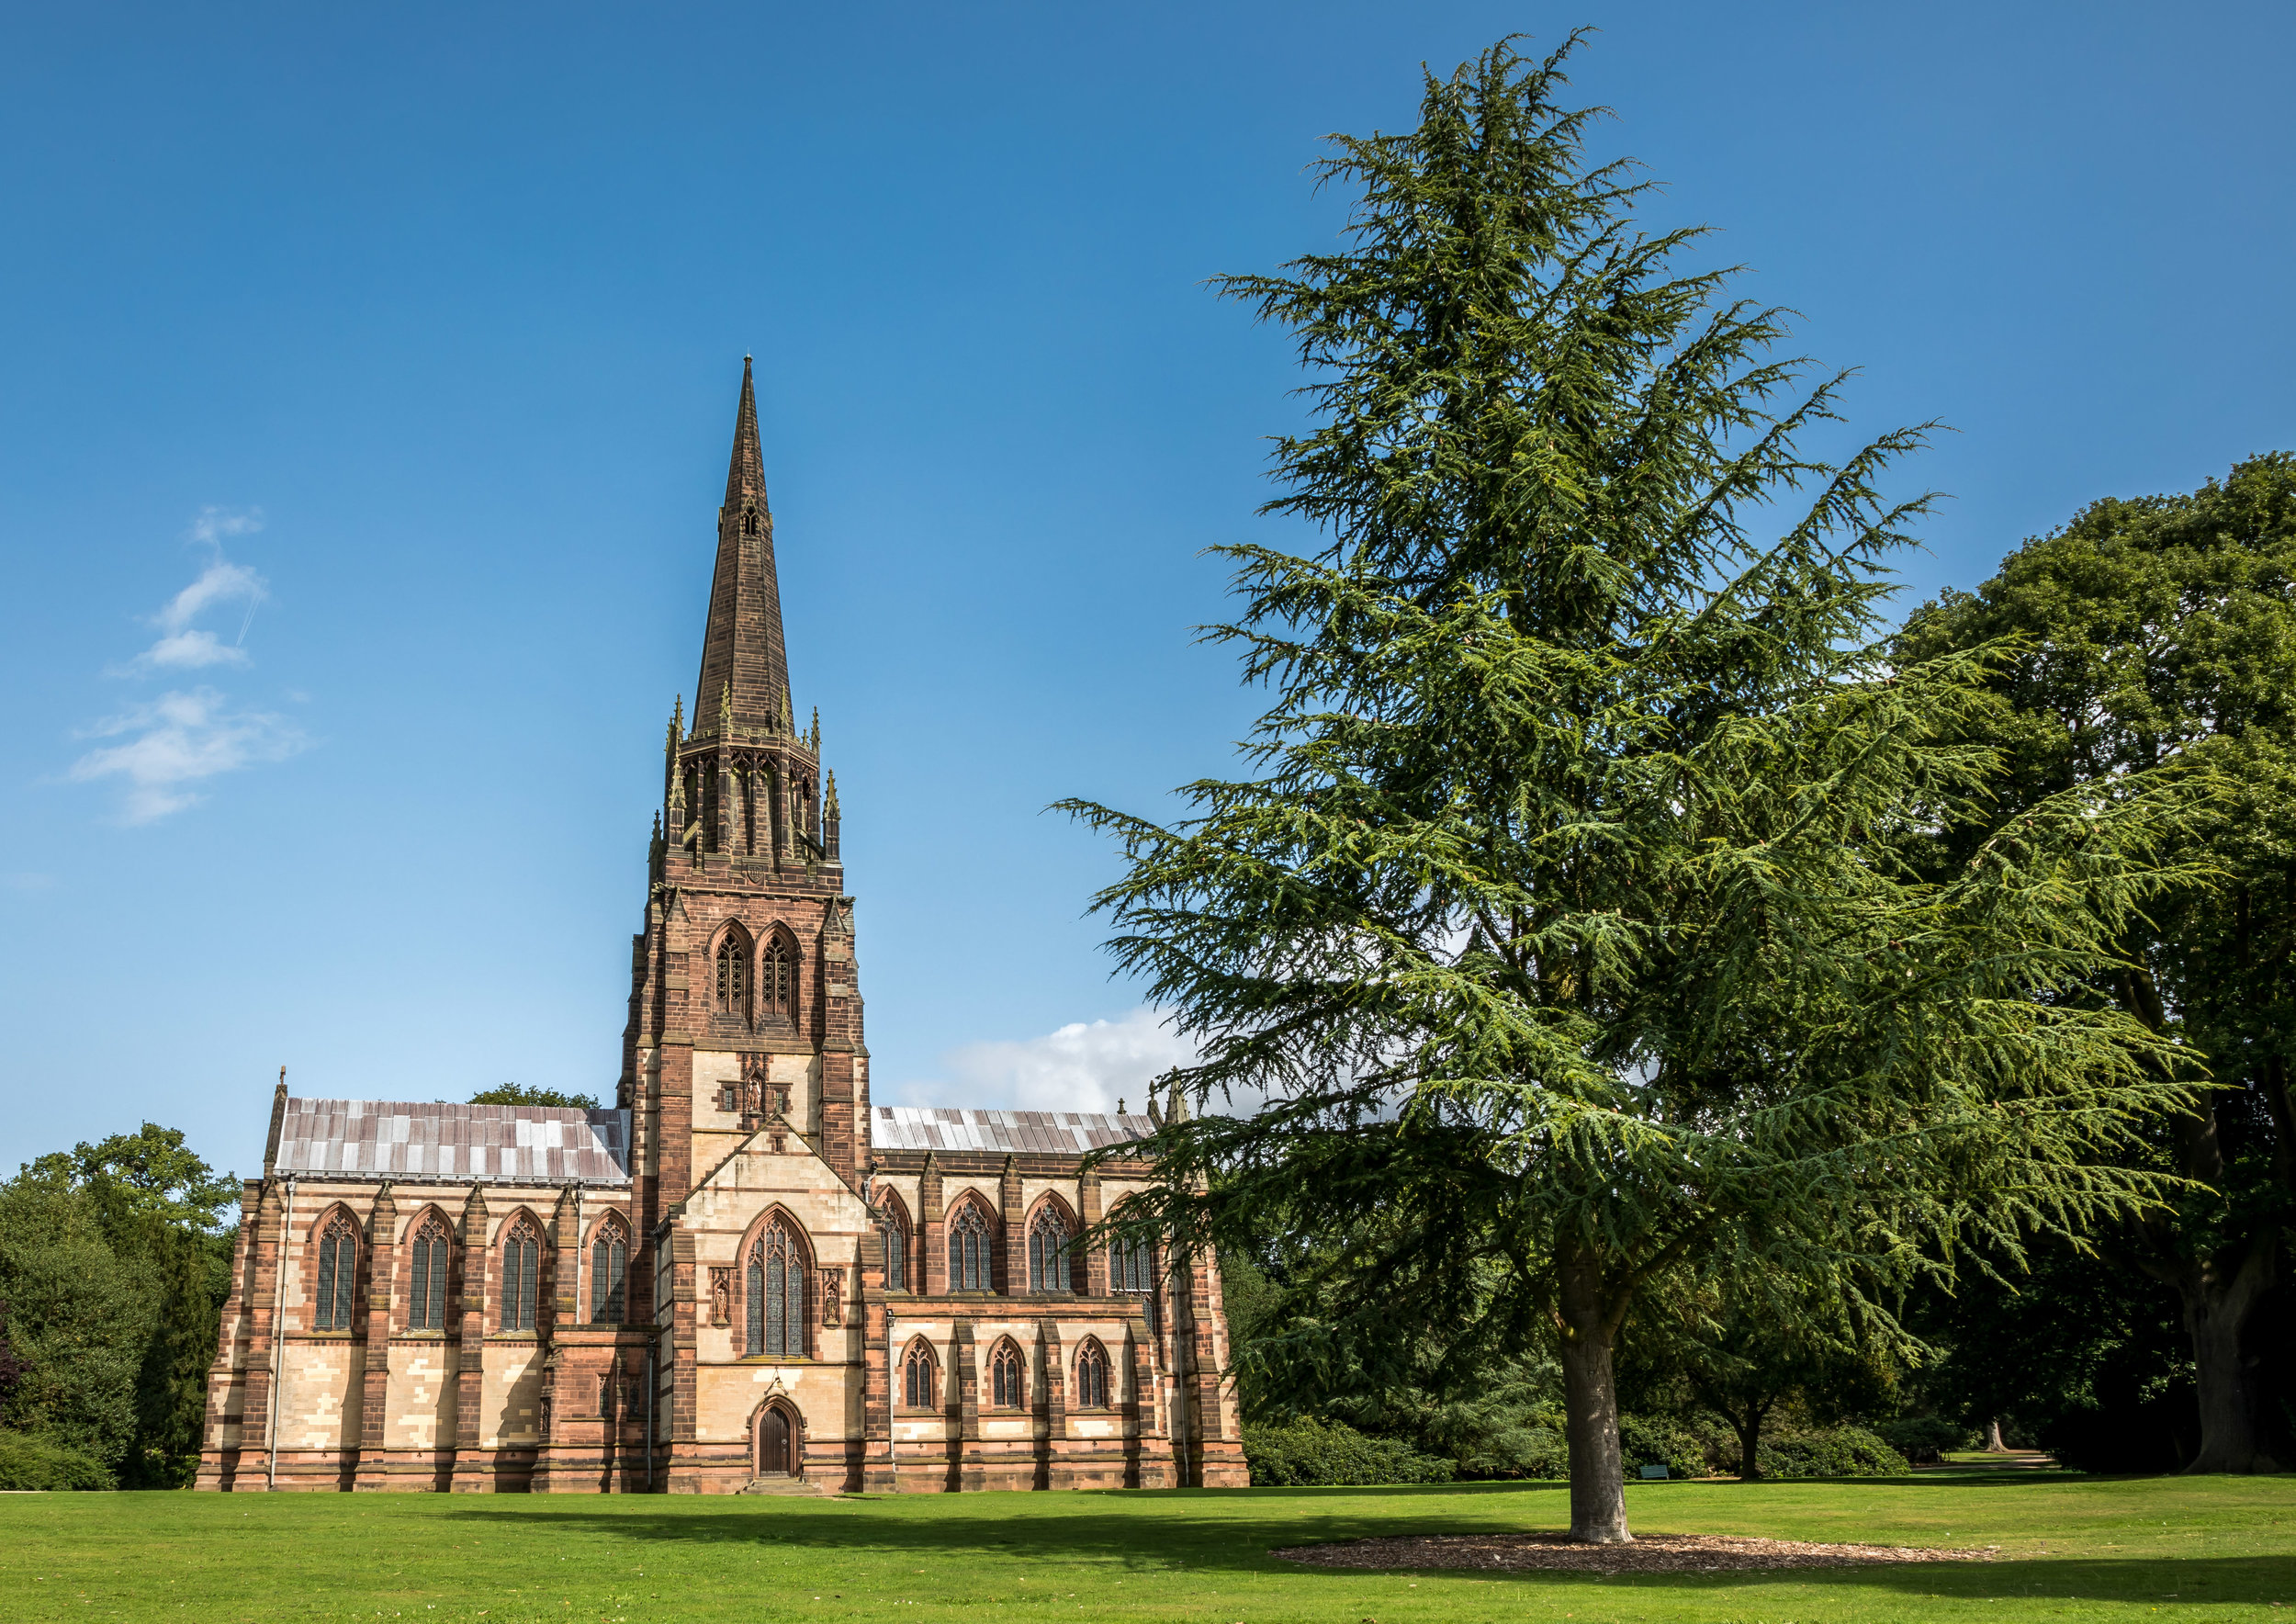 Clumber Park Church - Church of St Mary the Virgin -  BUY PRINT HERE